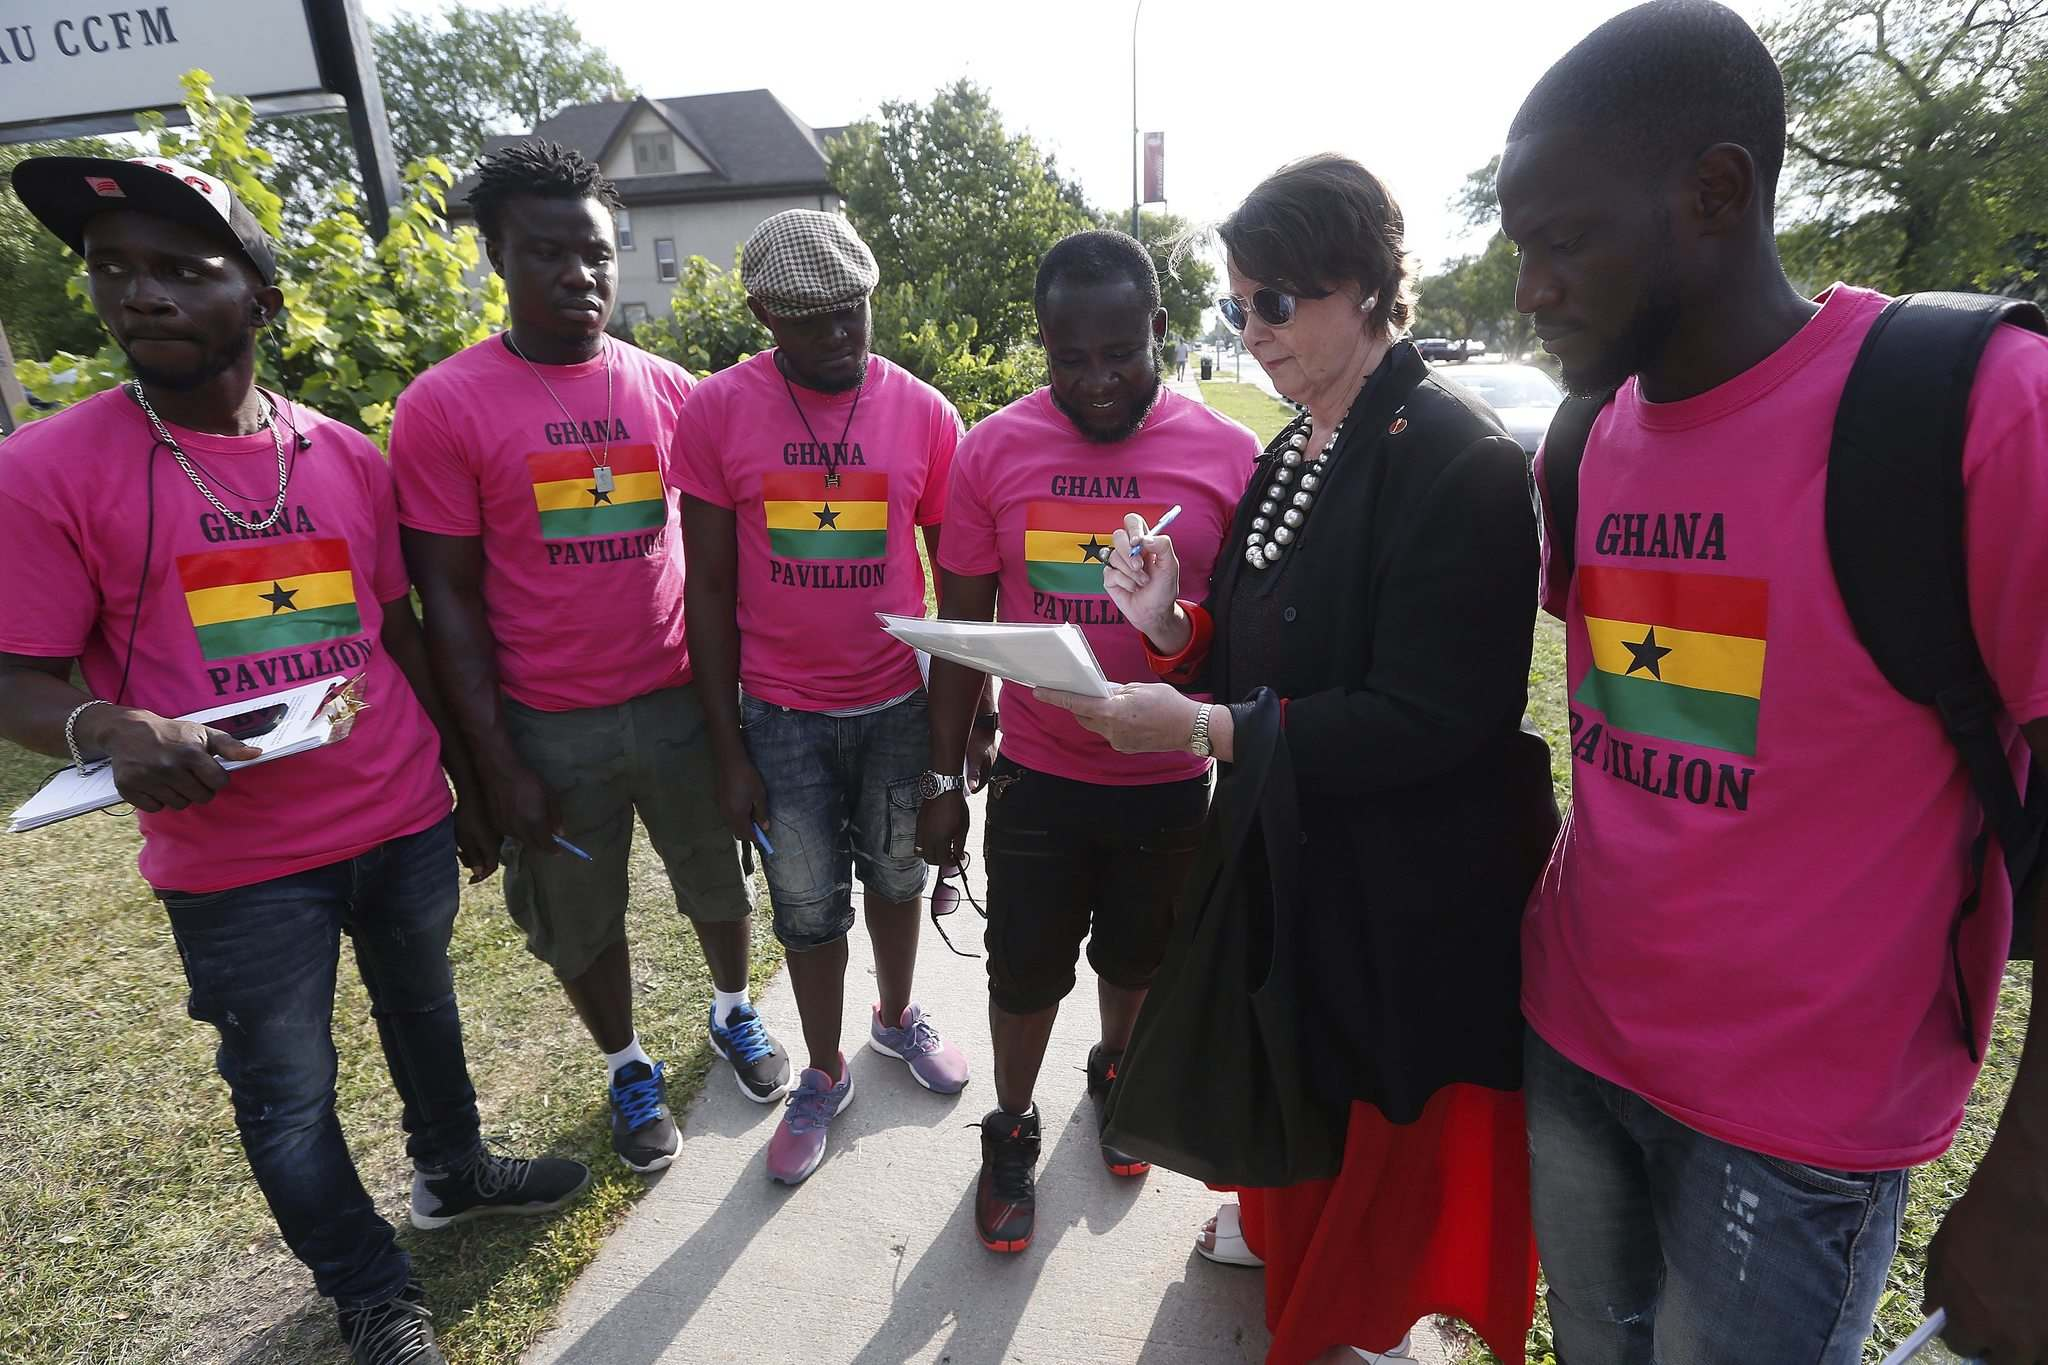 JOHN WOODS / WINNIPEG FREE PRESS</p><p>McPhedran signs a petition calling on the Ghanaian government to change its anti-LGBTTQ* policies.</p></p>